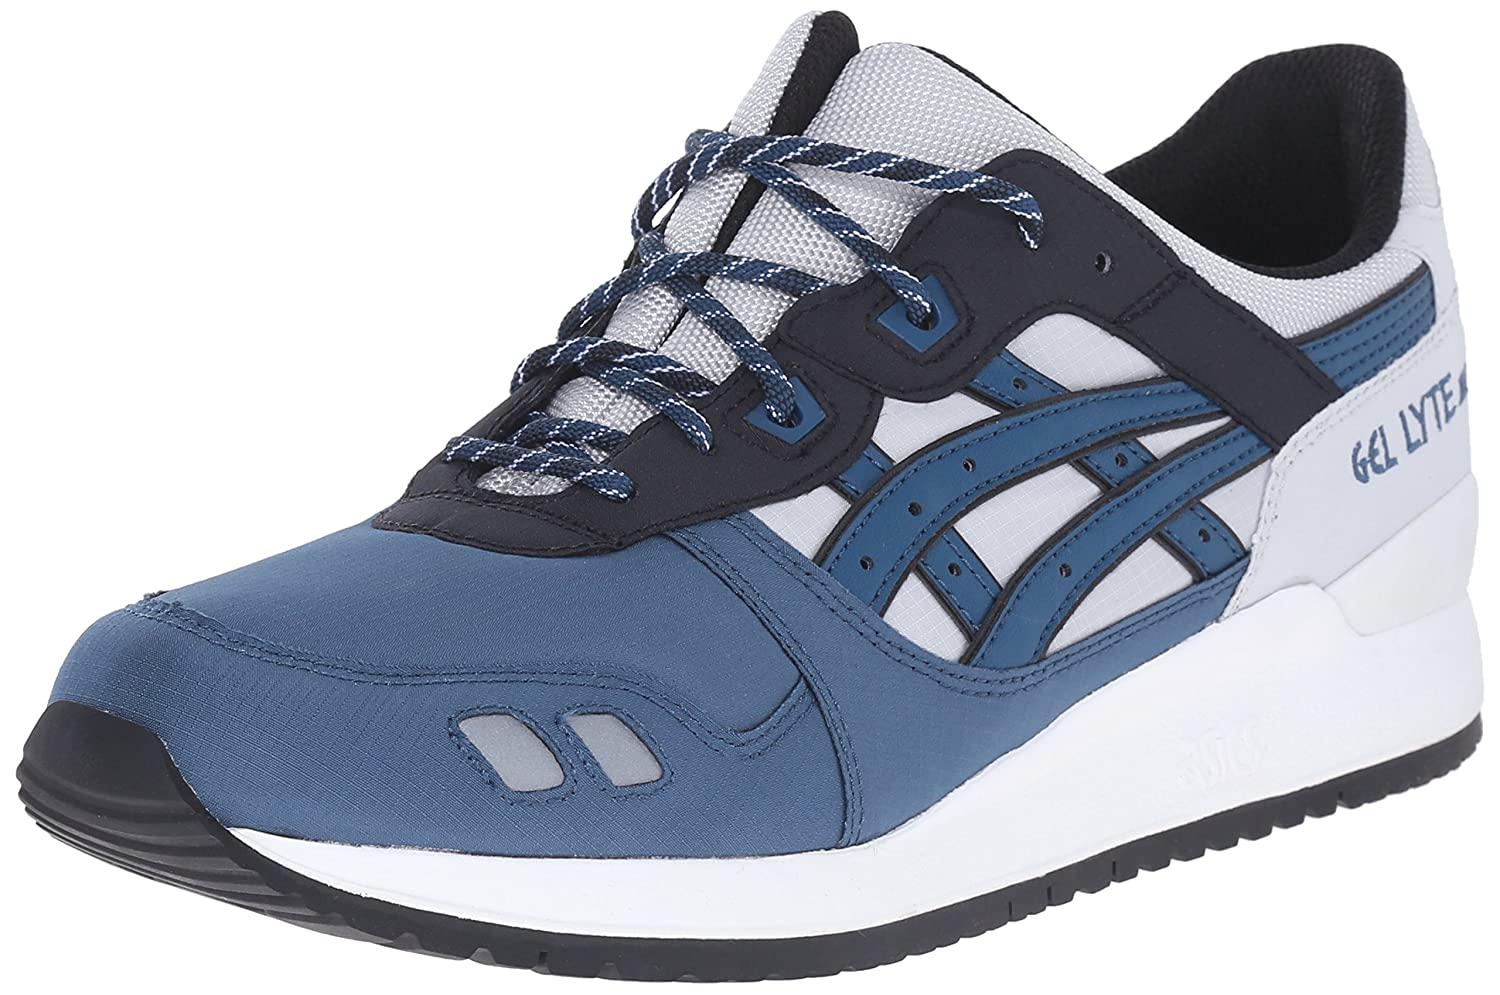 ASICS Men's GEL-Lyte III Retro Sneaker B00ZQ9RCKG 7 M US|Soft Grey/Dragon Fly